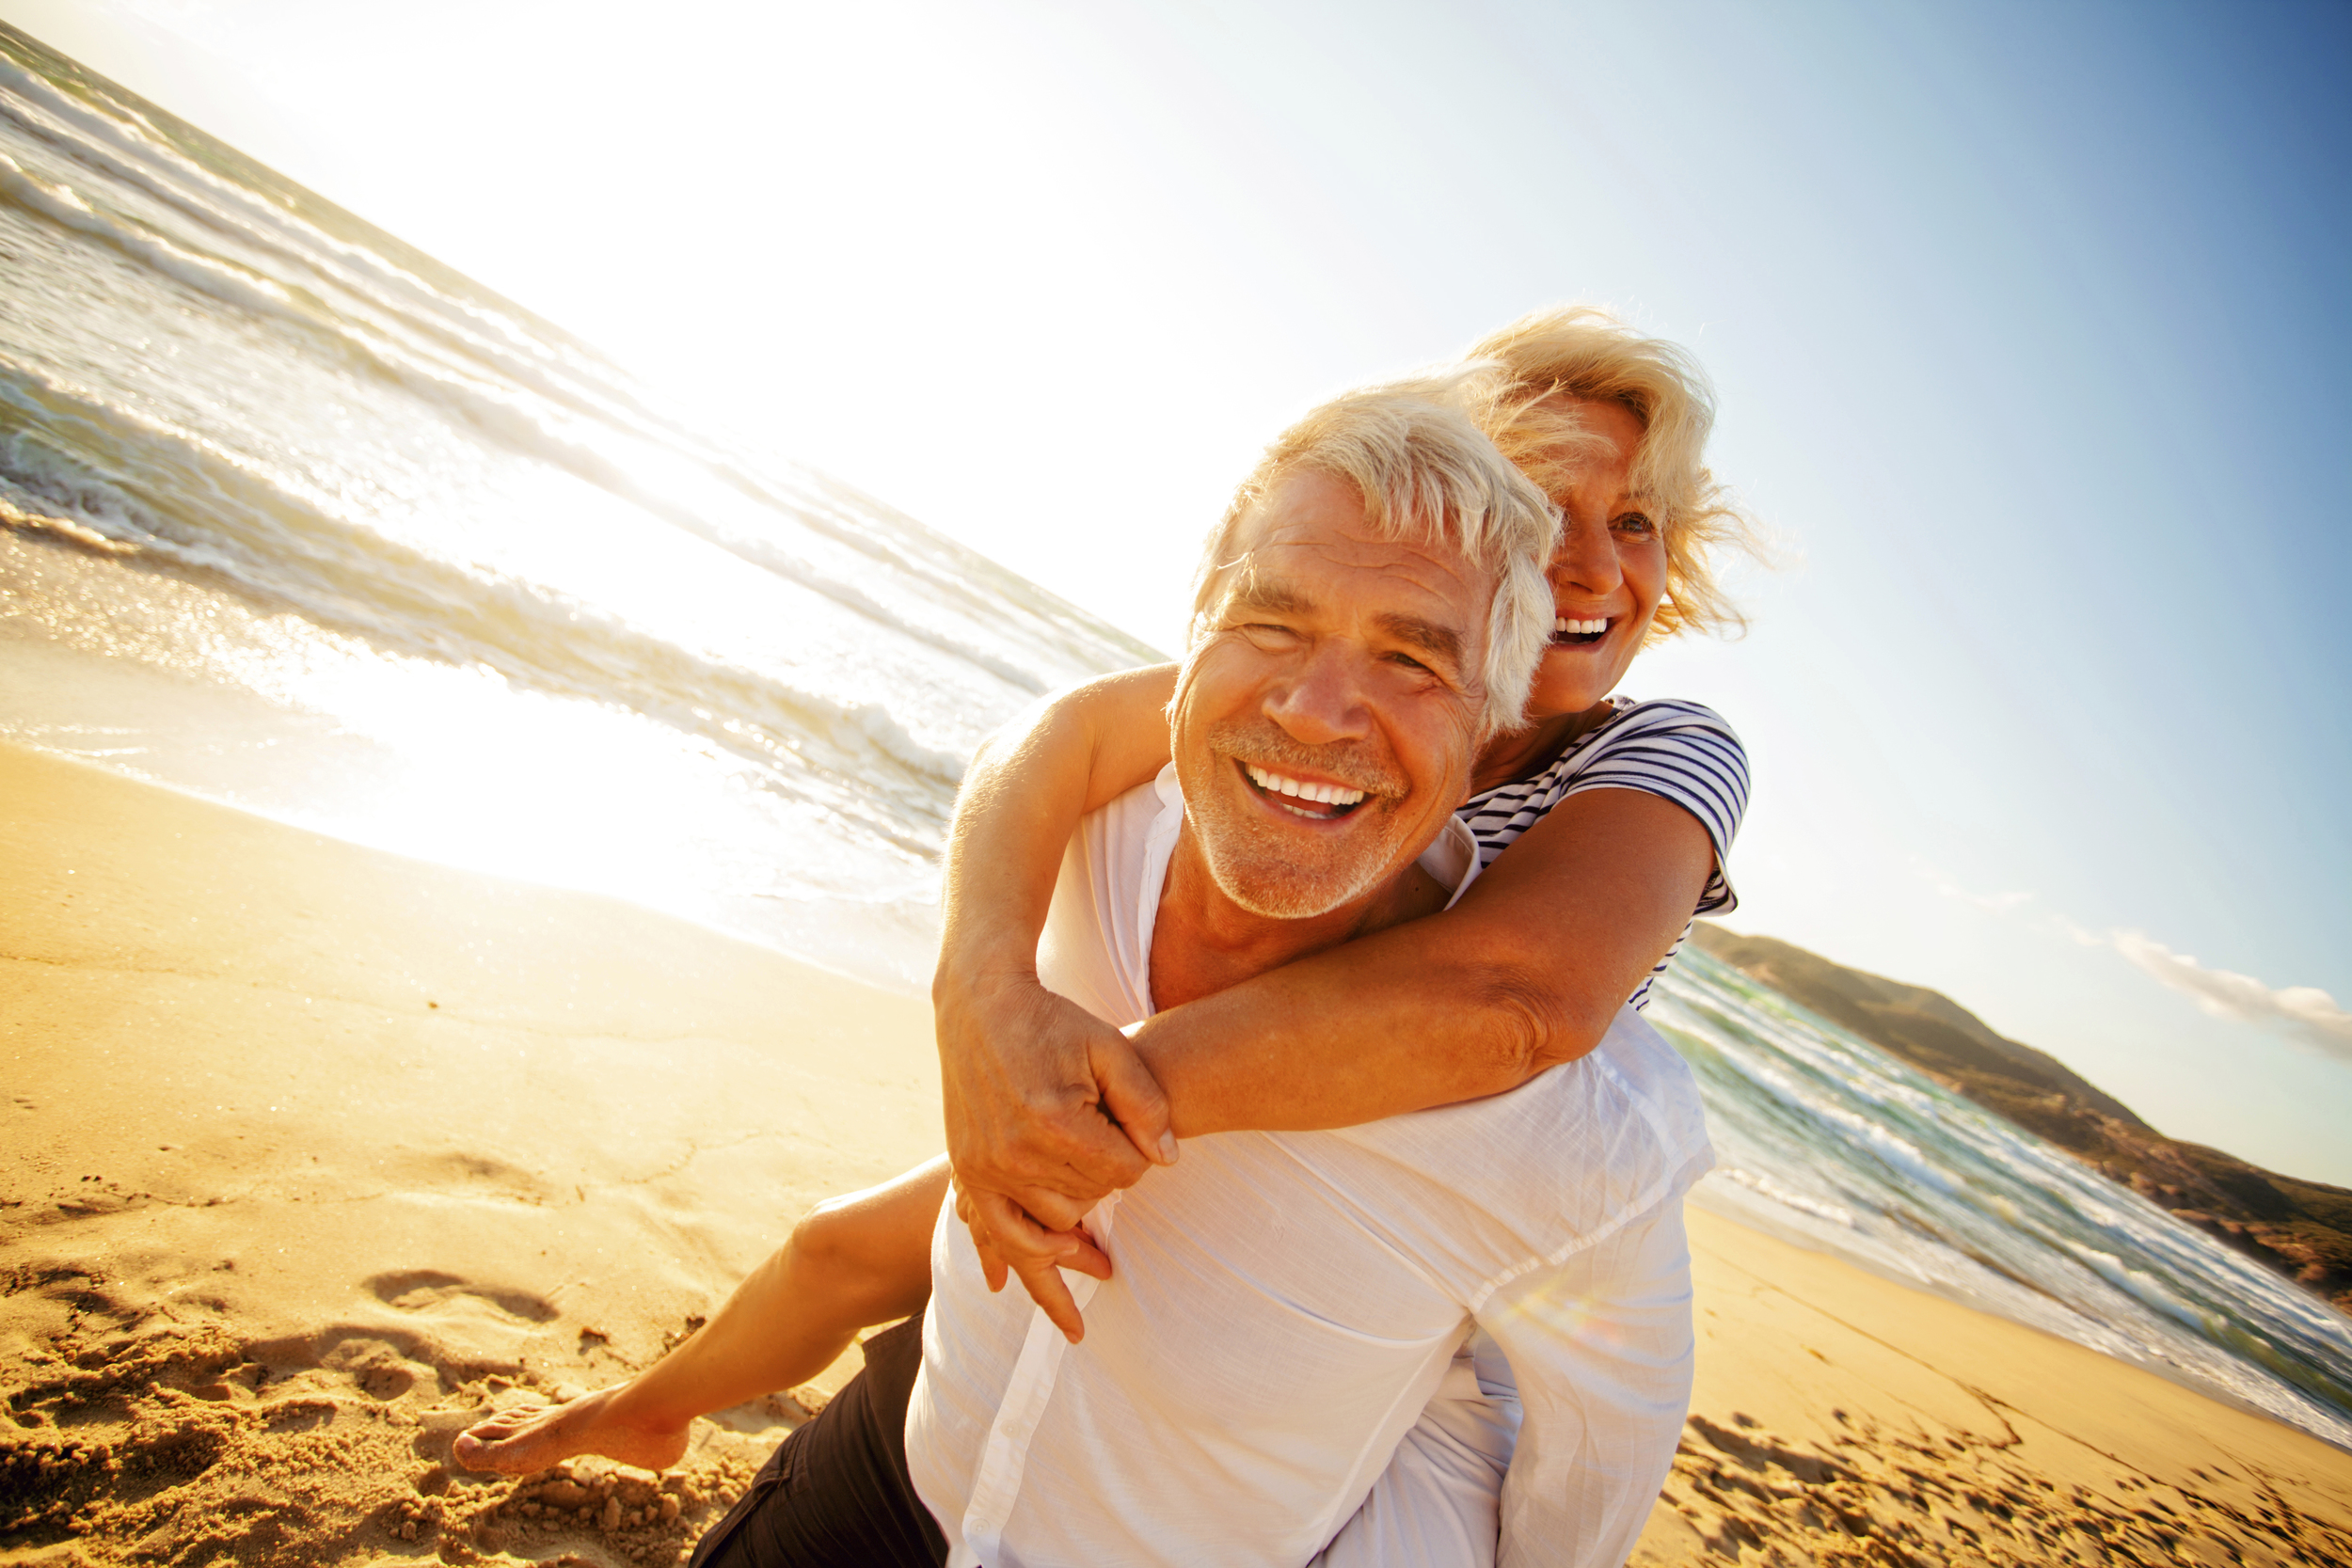 Get affordable dentures from Peter Family Dentistry and enjoy your smile again.